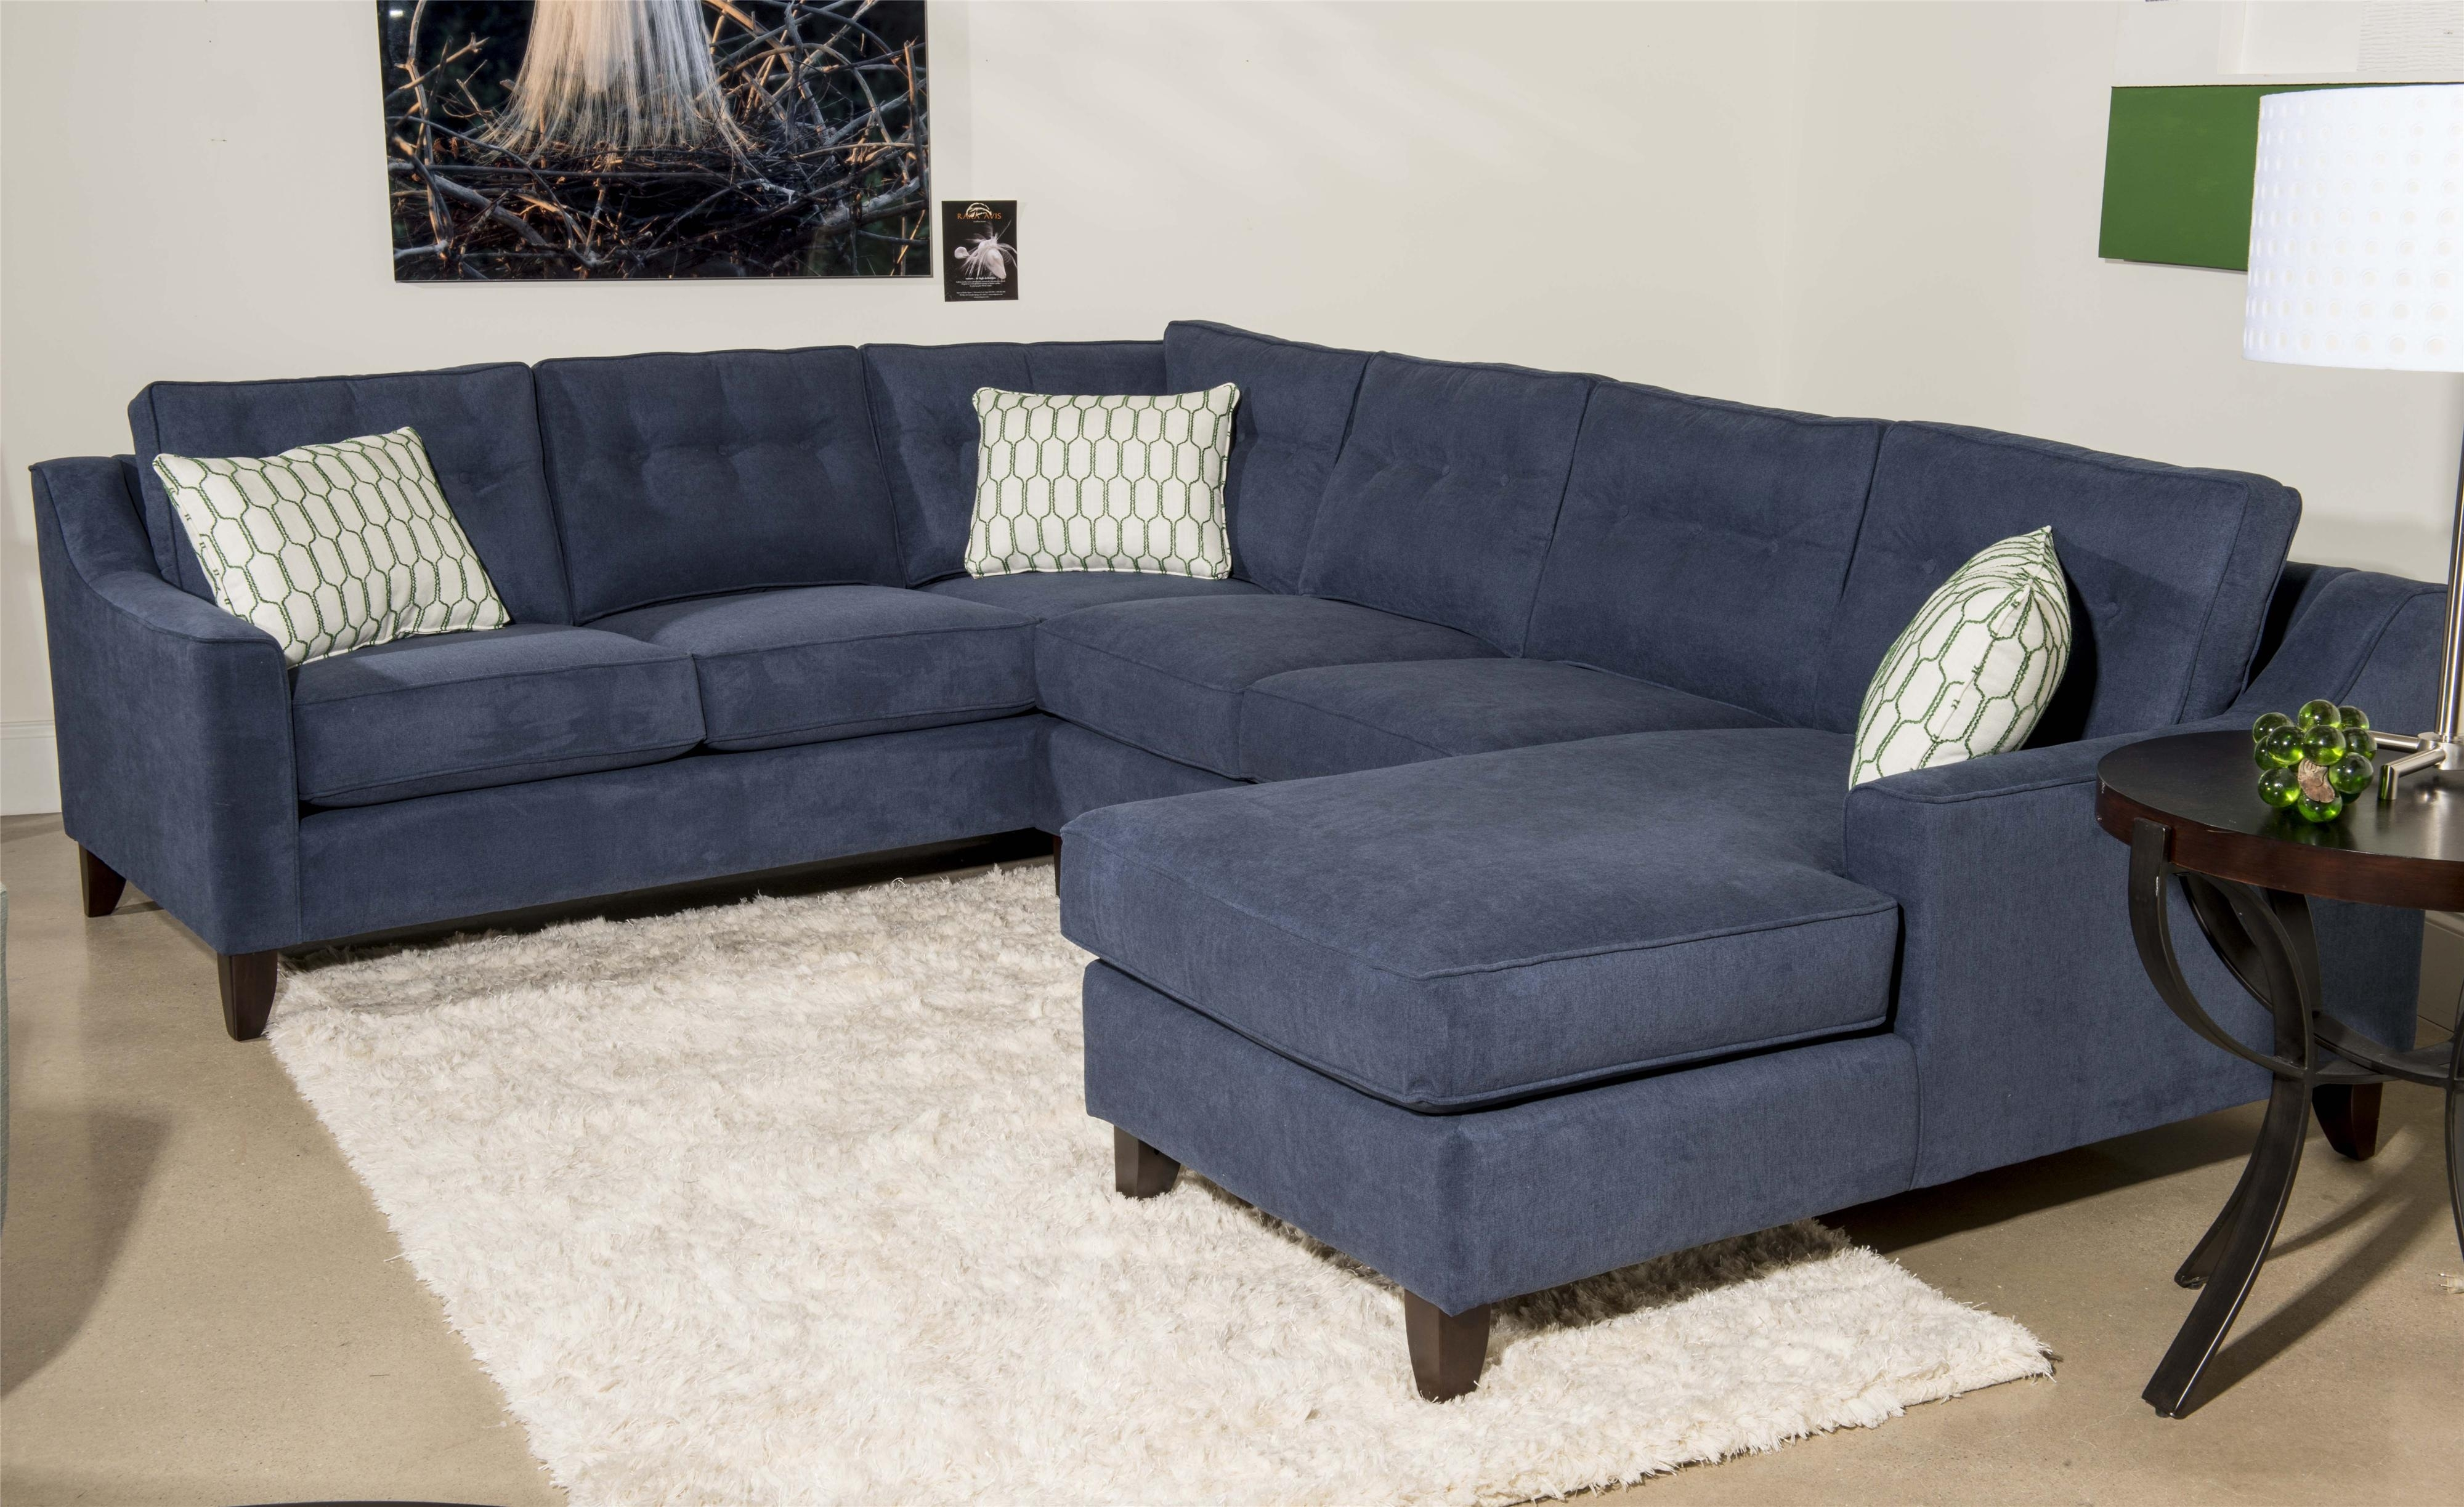 Sectional Sofa Design: 3 Pieces Wonderful Sofa With Chaise Multi With Regard To Blue U Shaped Sectionals (Image 8 of 10)